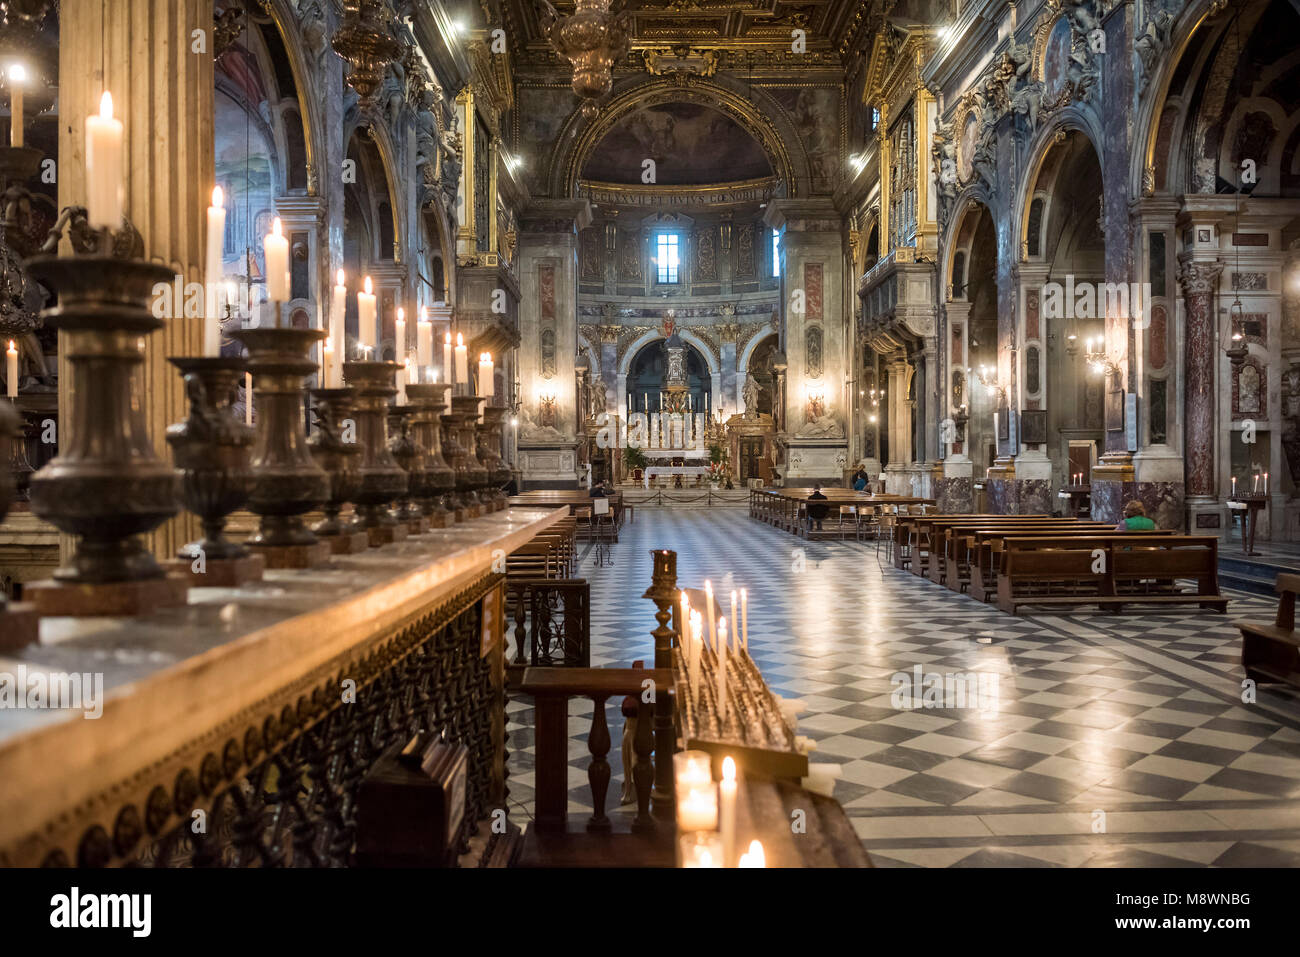 Florence. Italy. Interior of the Basilica della Santissima Annunziata (Basilica of the Most Holy Annunciation). - Stock Image